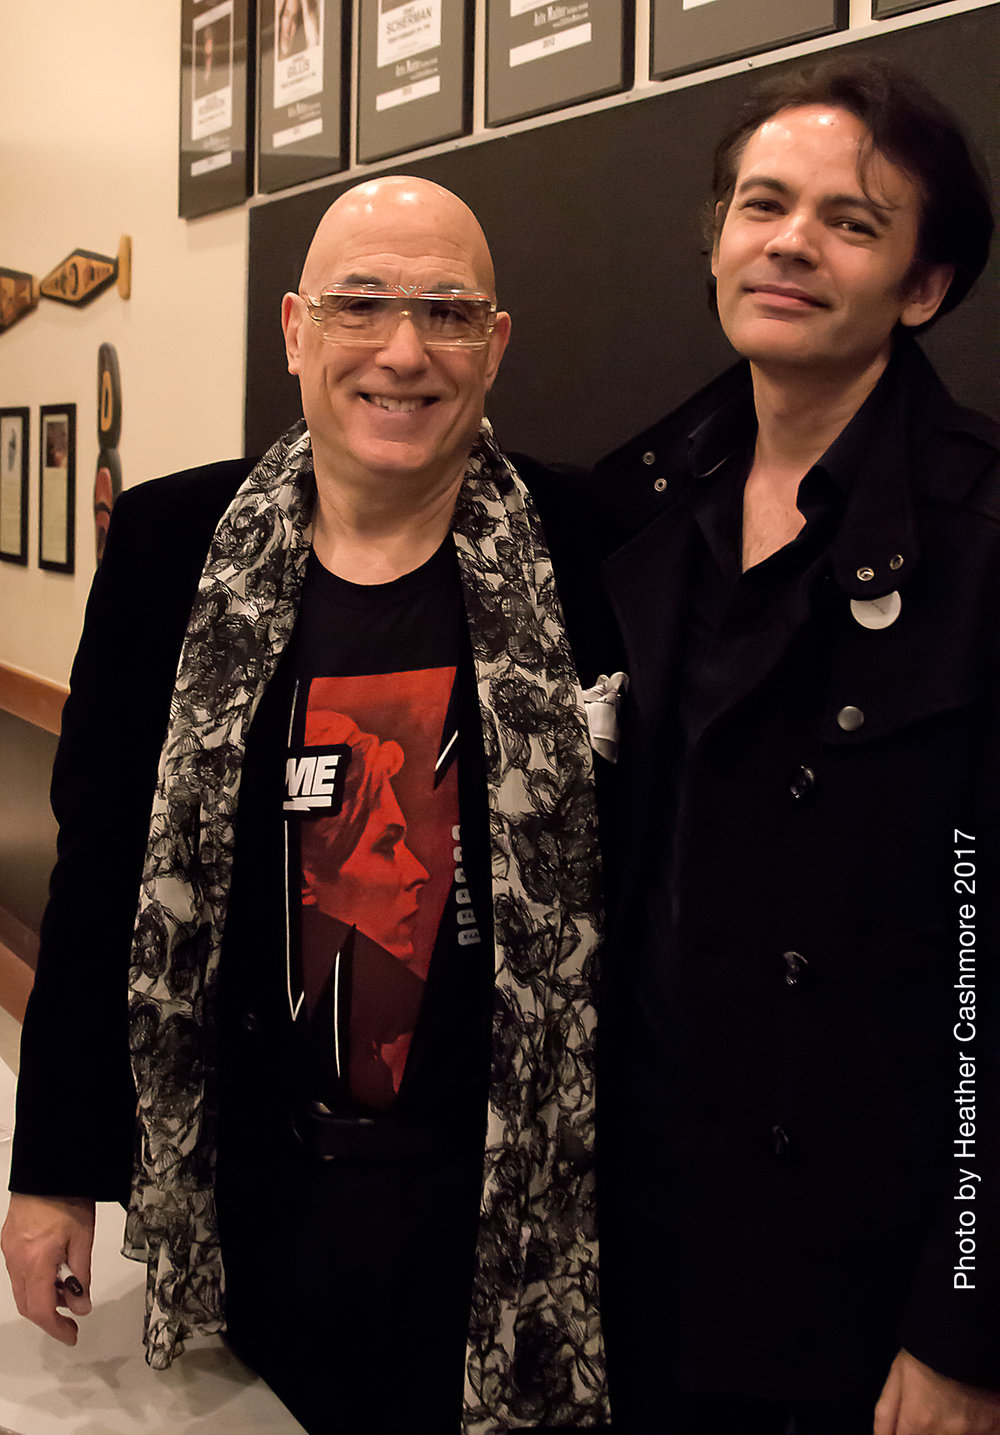 Mike Garson - This past March, Mitchell had the great pleasure of meeting one of his heroes, Mike Garson. A legendary piano/keyboard player and David Bowie collaborator since 1972. They had a great time talking about how much they both miss New York City and of course, David Bowie.http://mikegarson.com